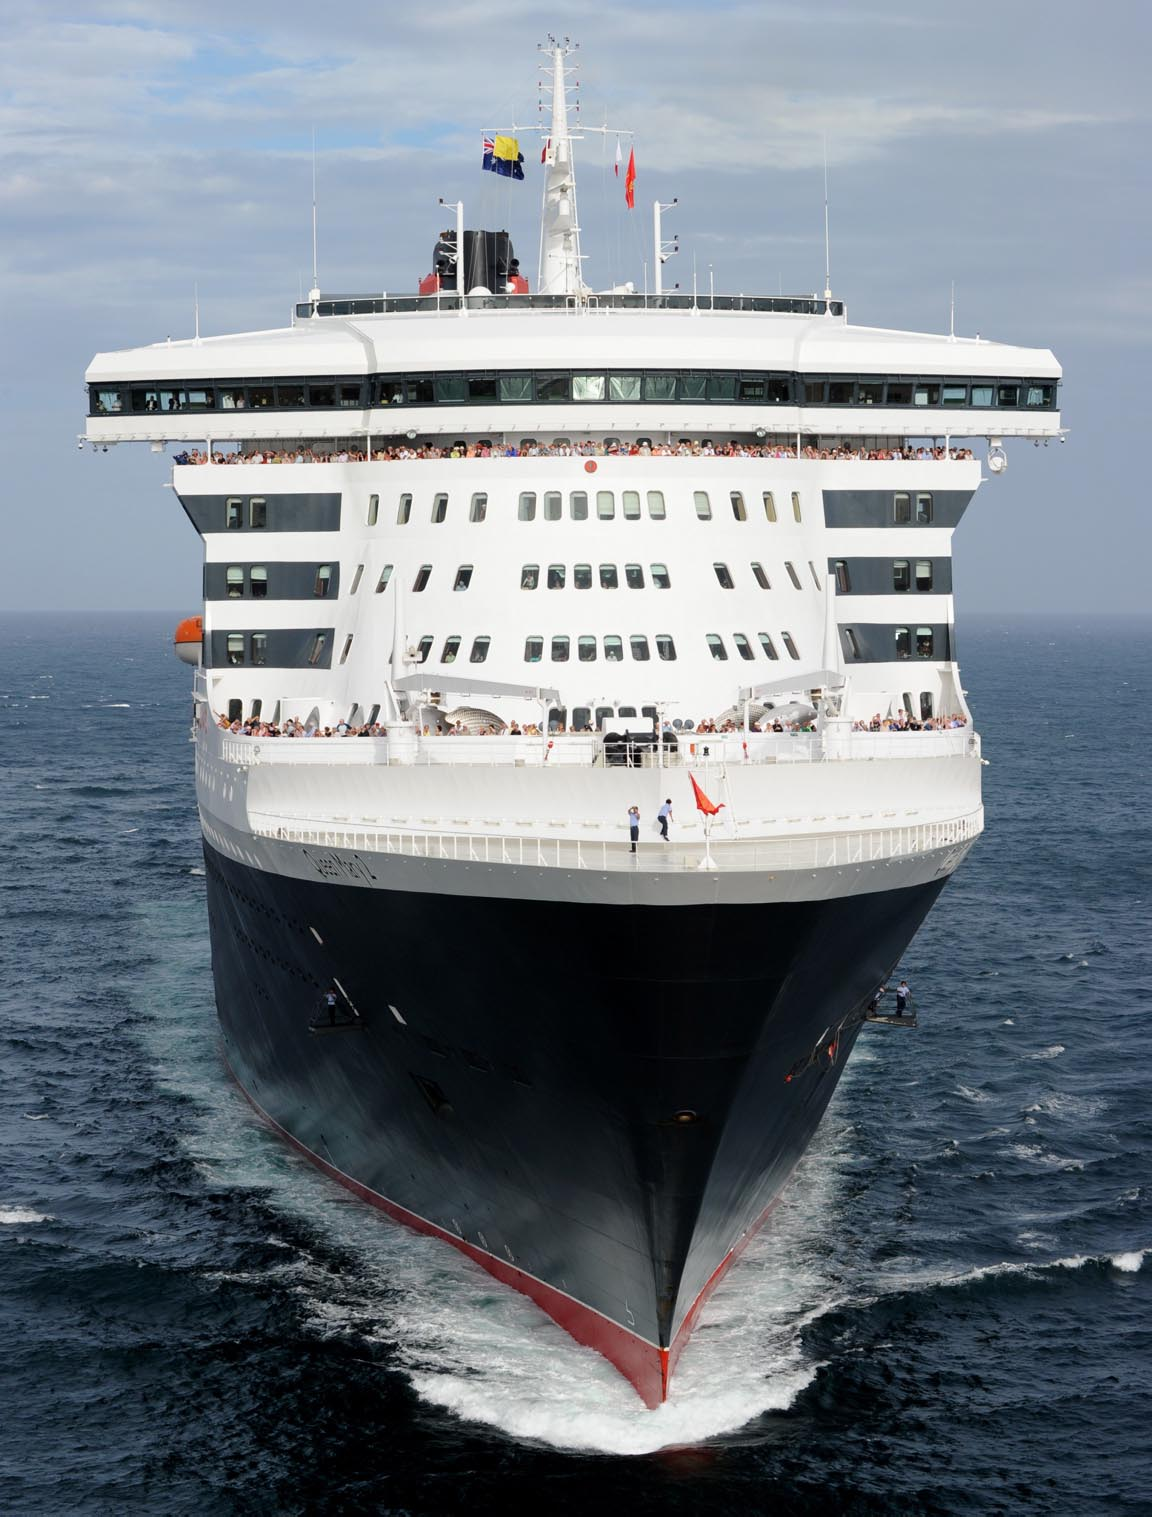 Travellers 39 good buys cruise fremantle queen mary 2 new for Garderobe queen mary 2